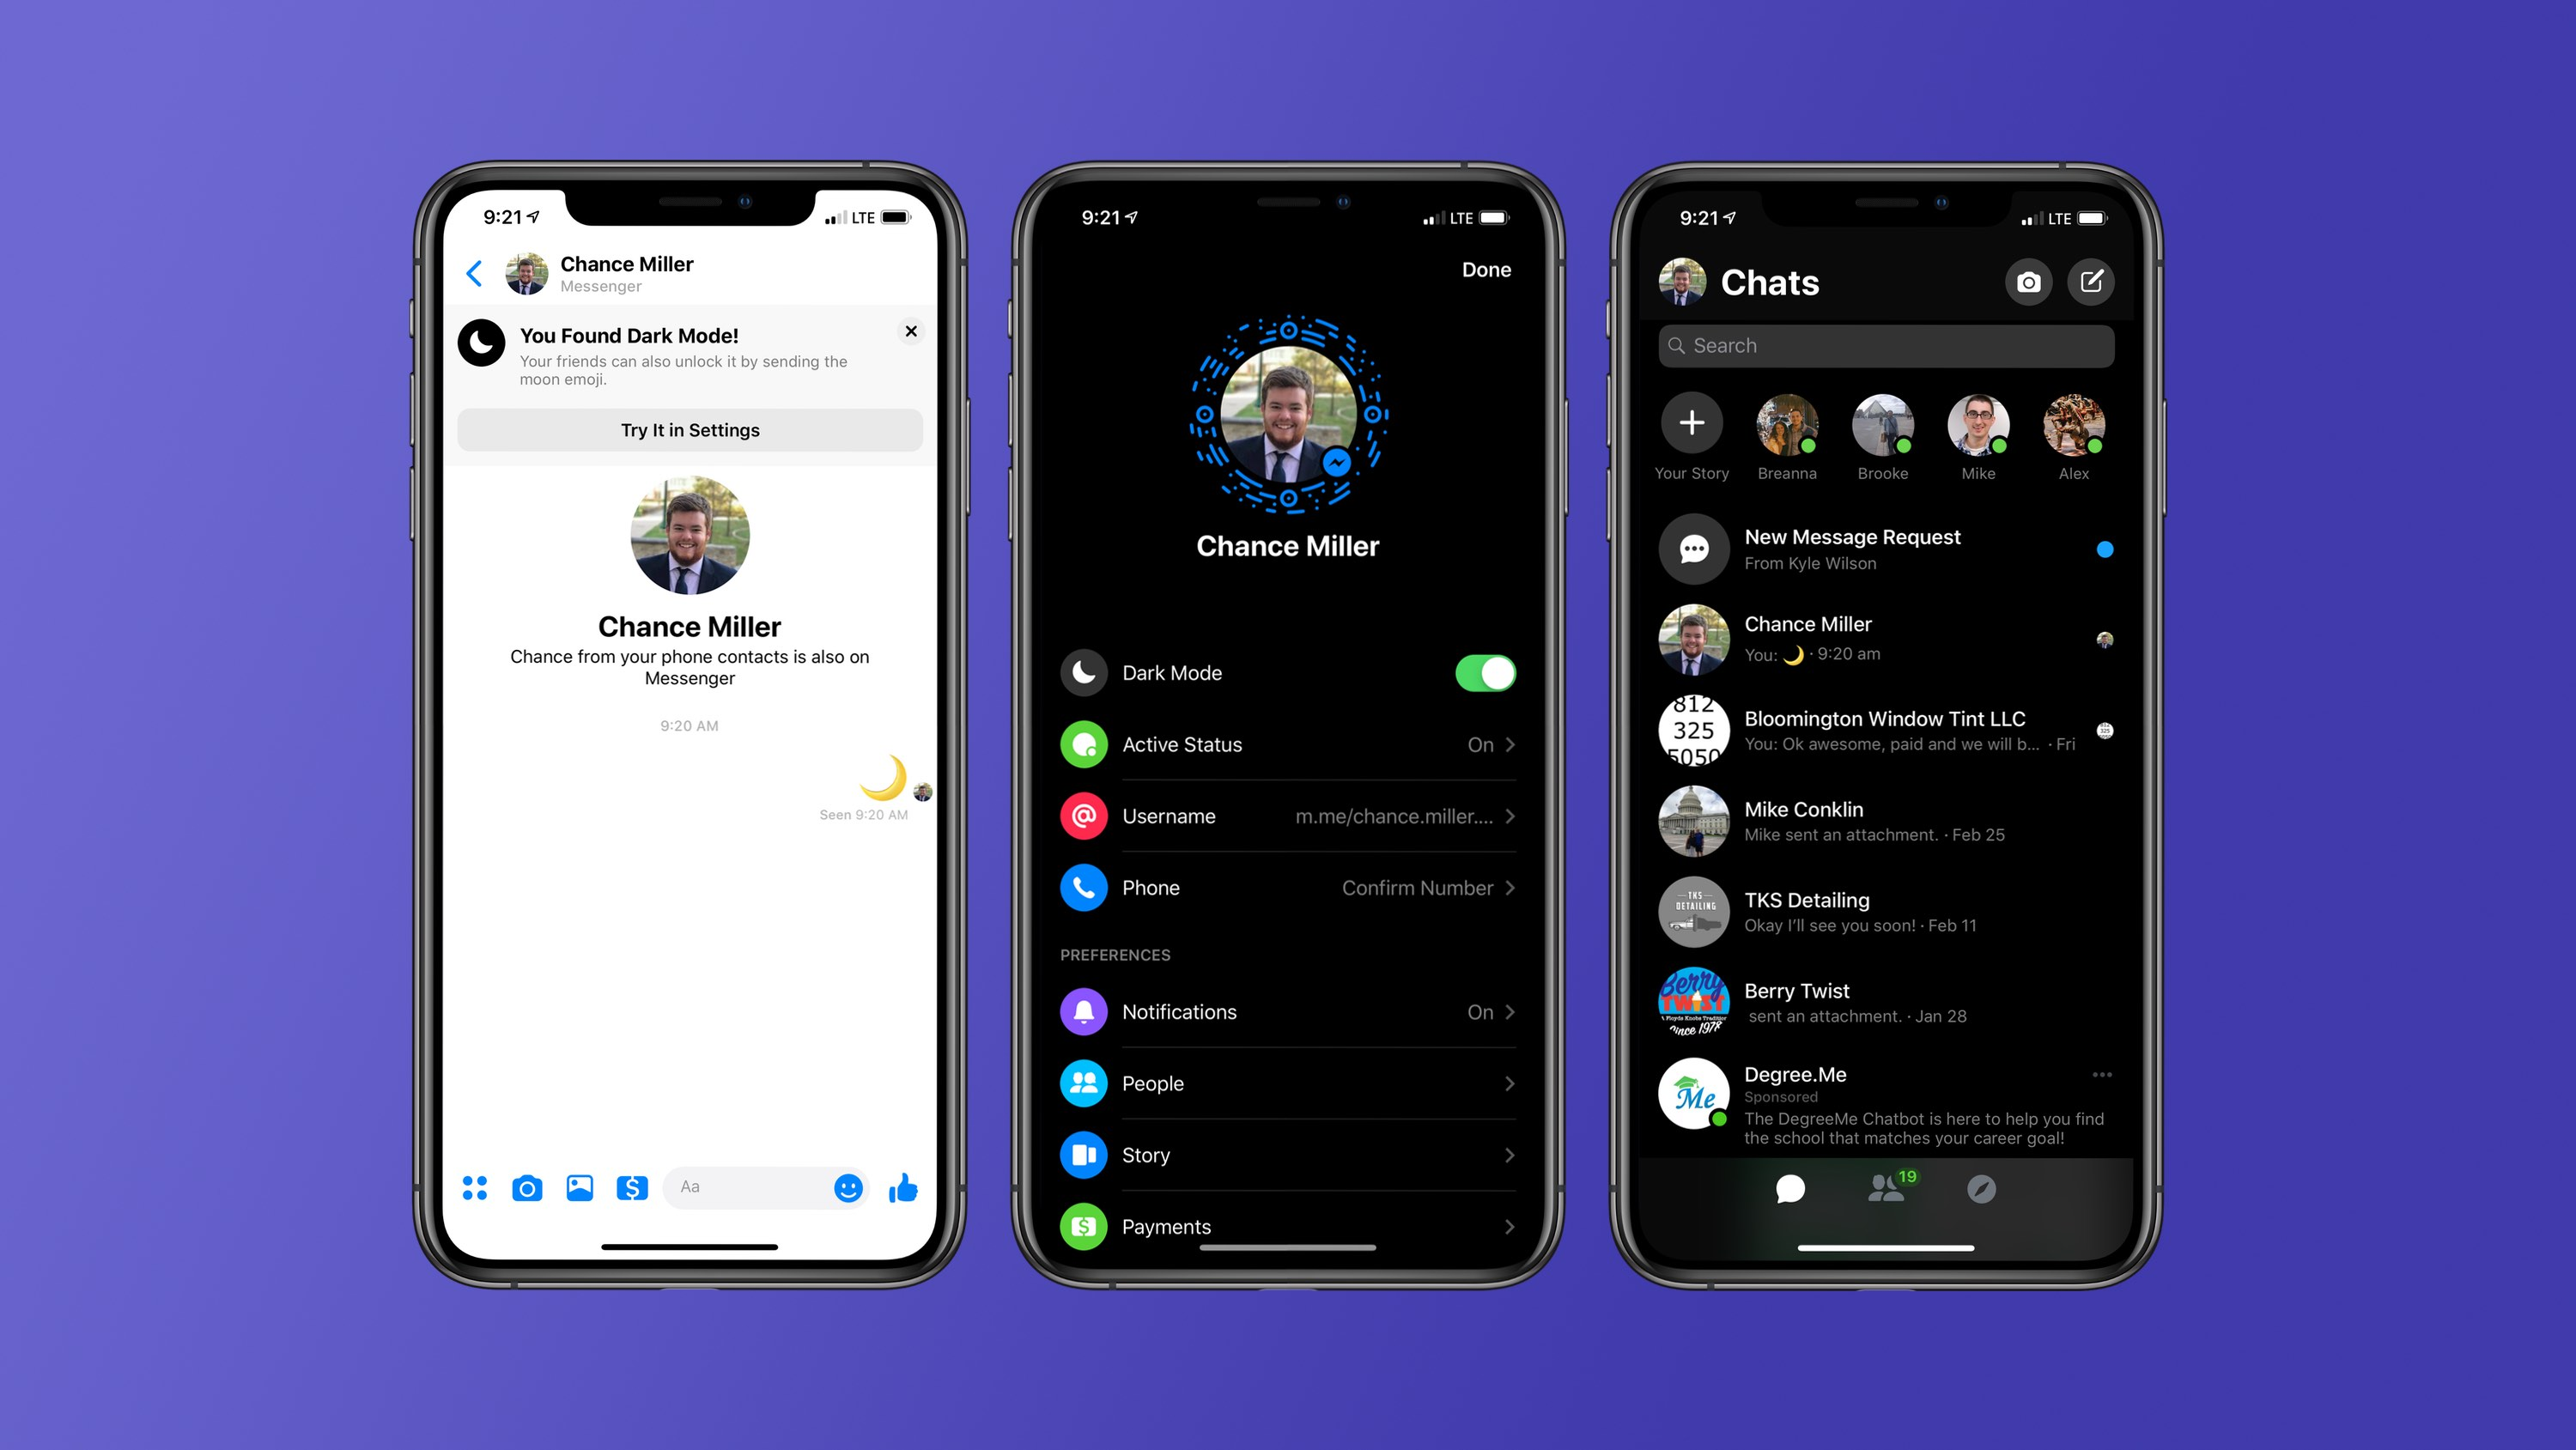 Facebook Messenger Dark Mode: How to enable hidden setting - 9to5Mac